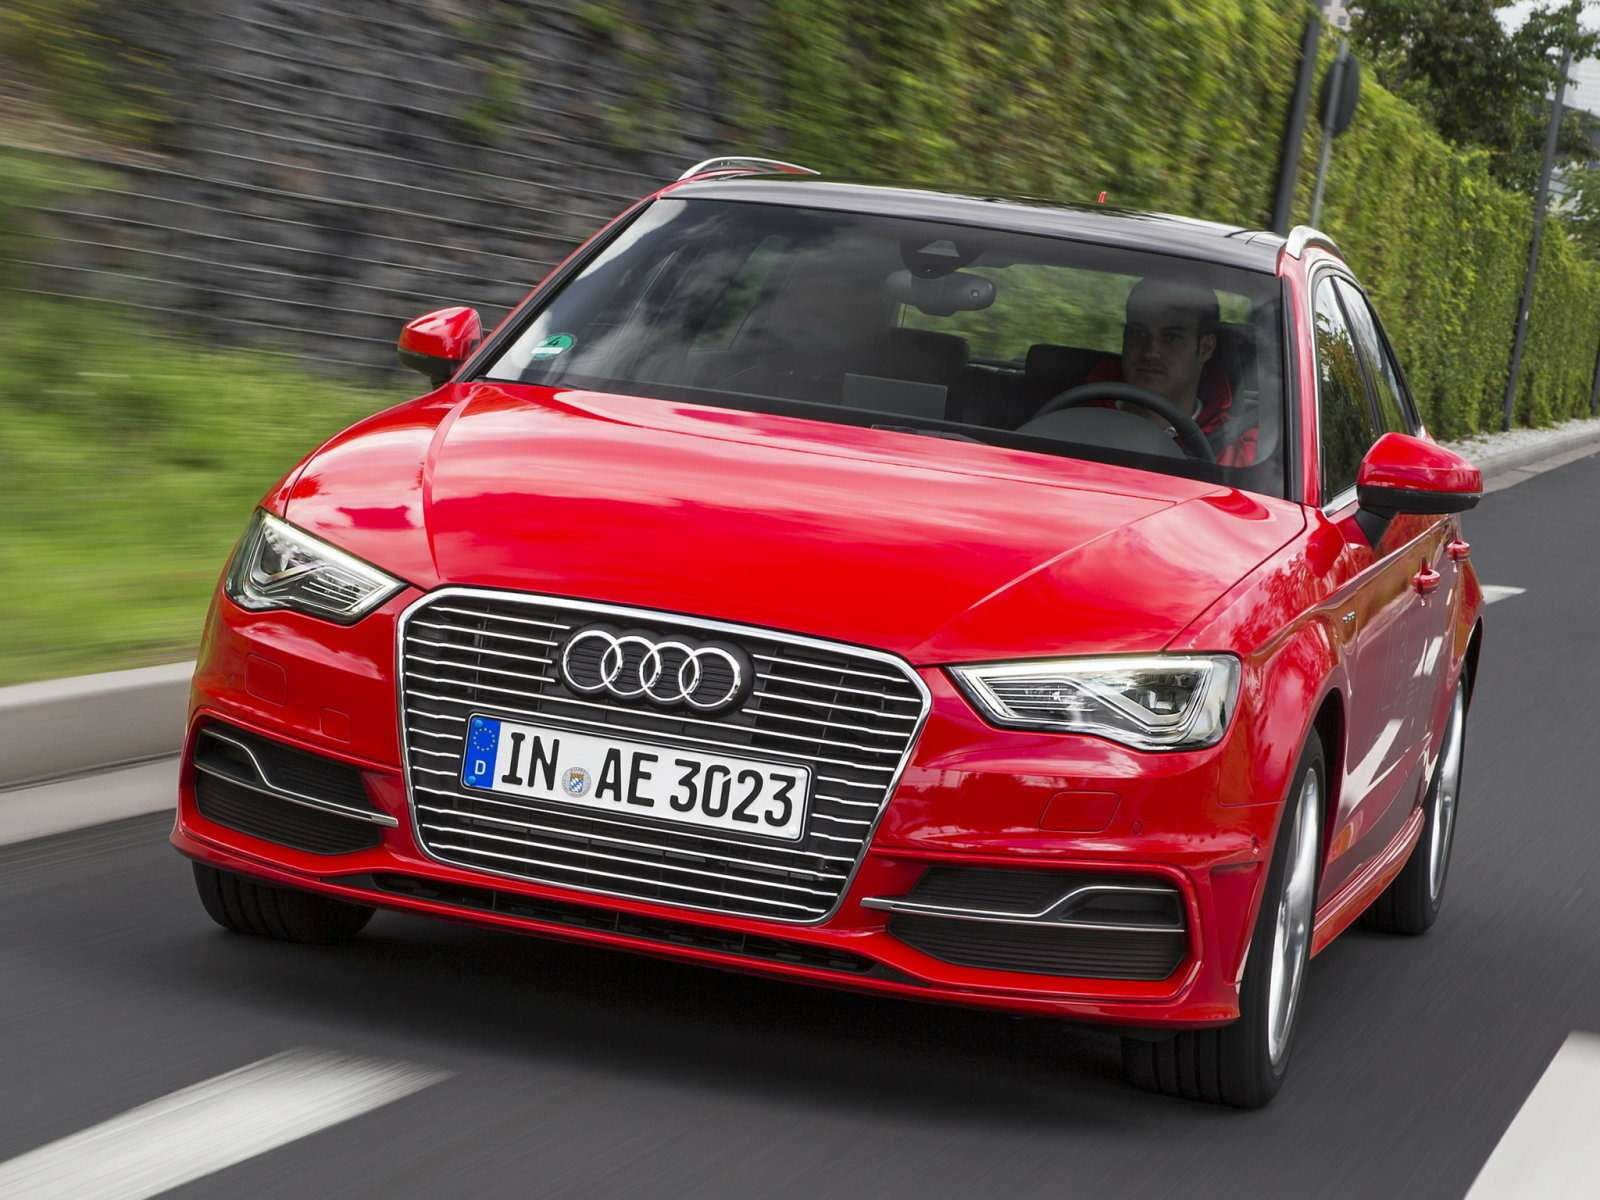 Audi_A3_Hatchback 5 door_2014